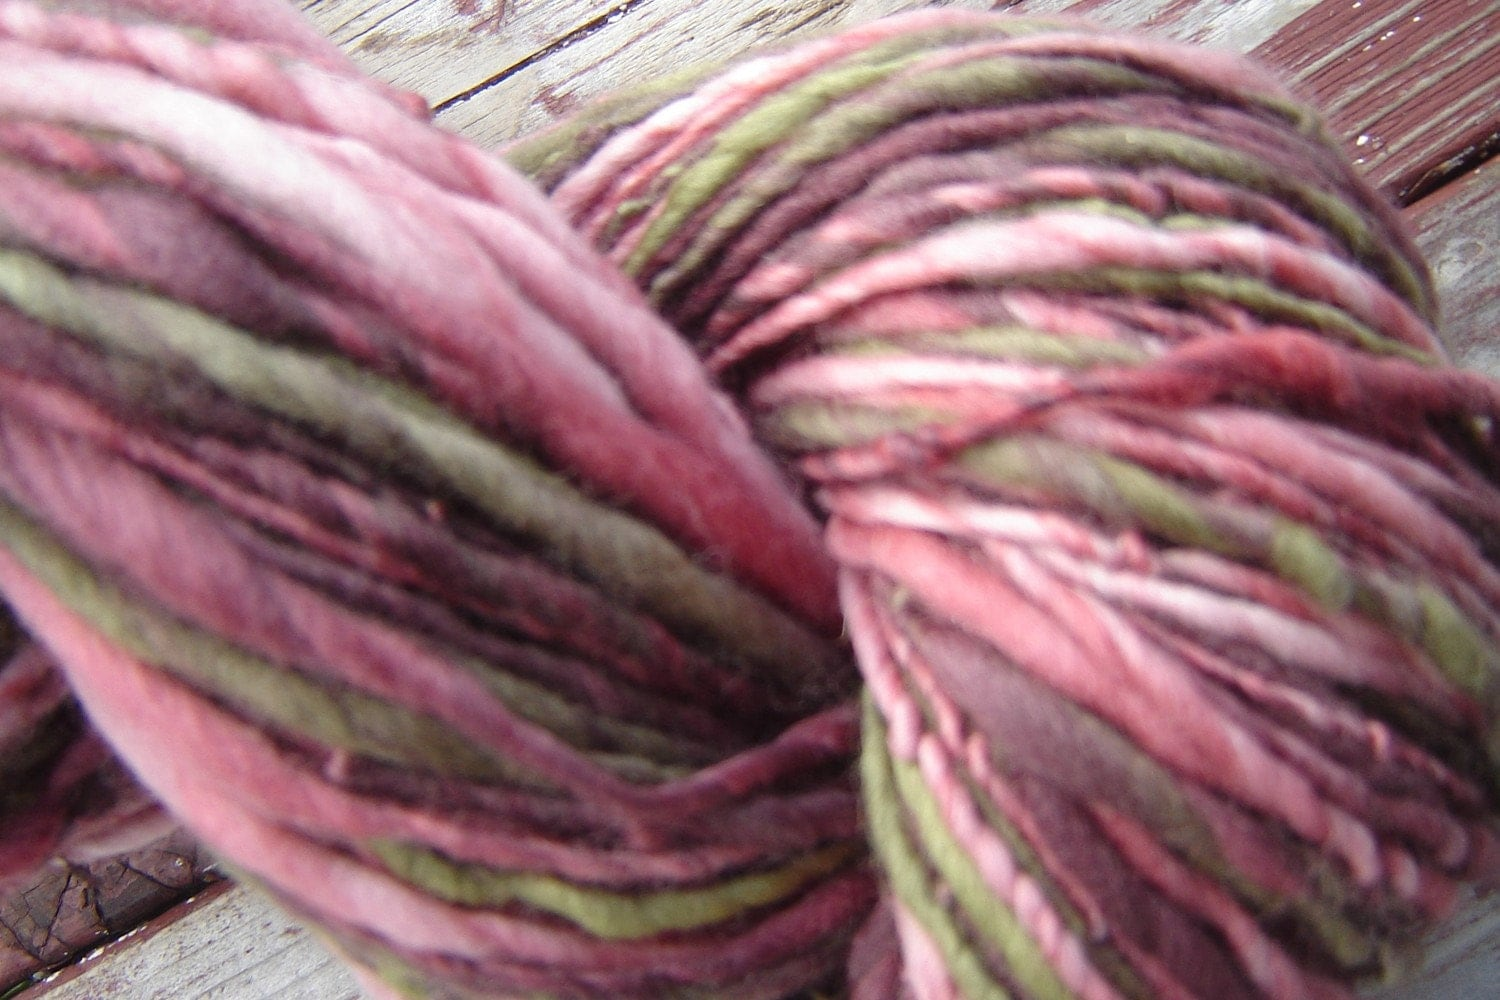 Handspun Merino worsted weight singles Yarn - Desert Rose - theKnitChix